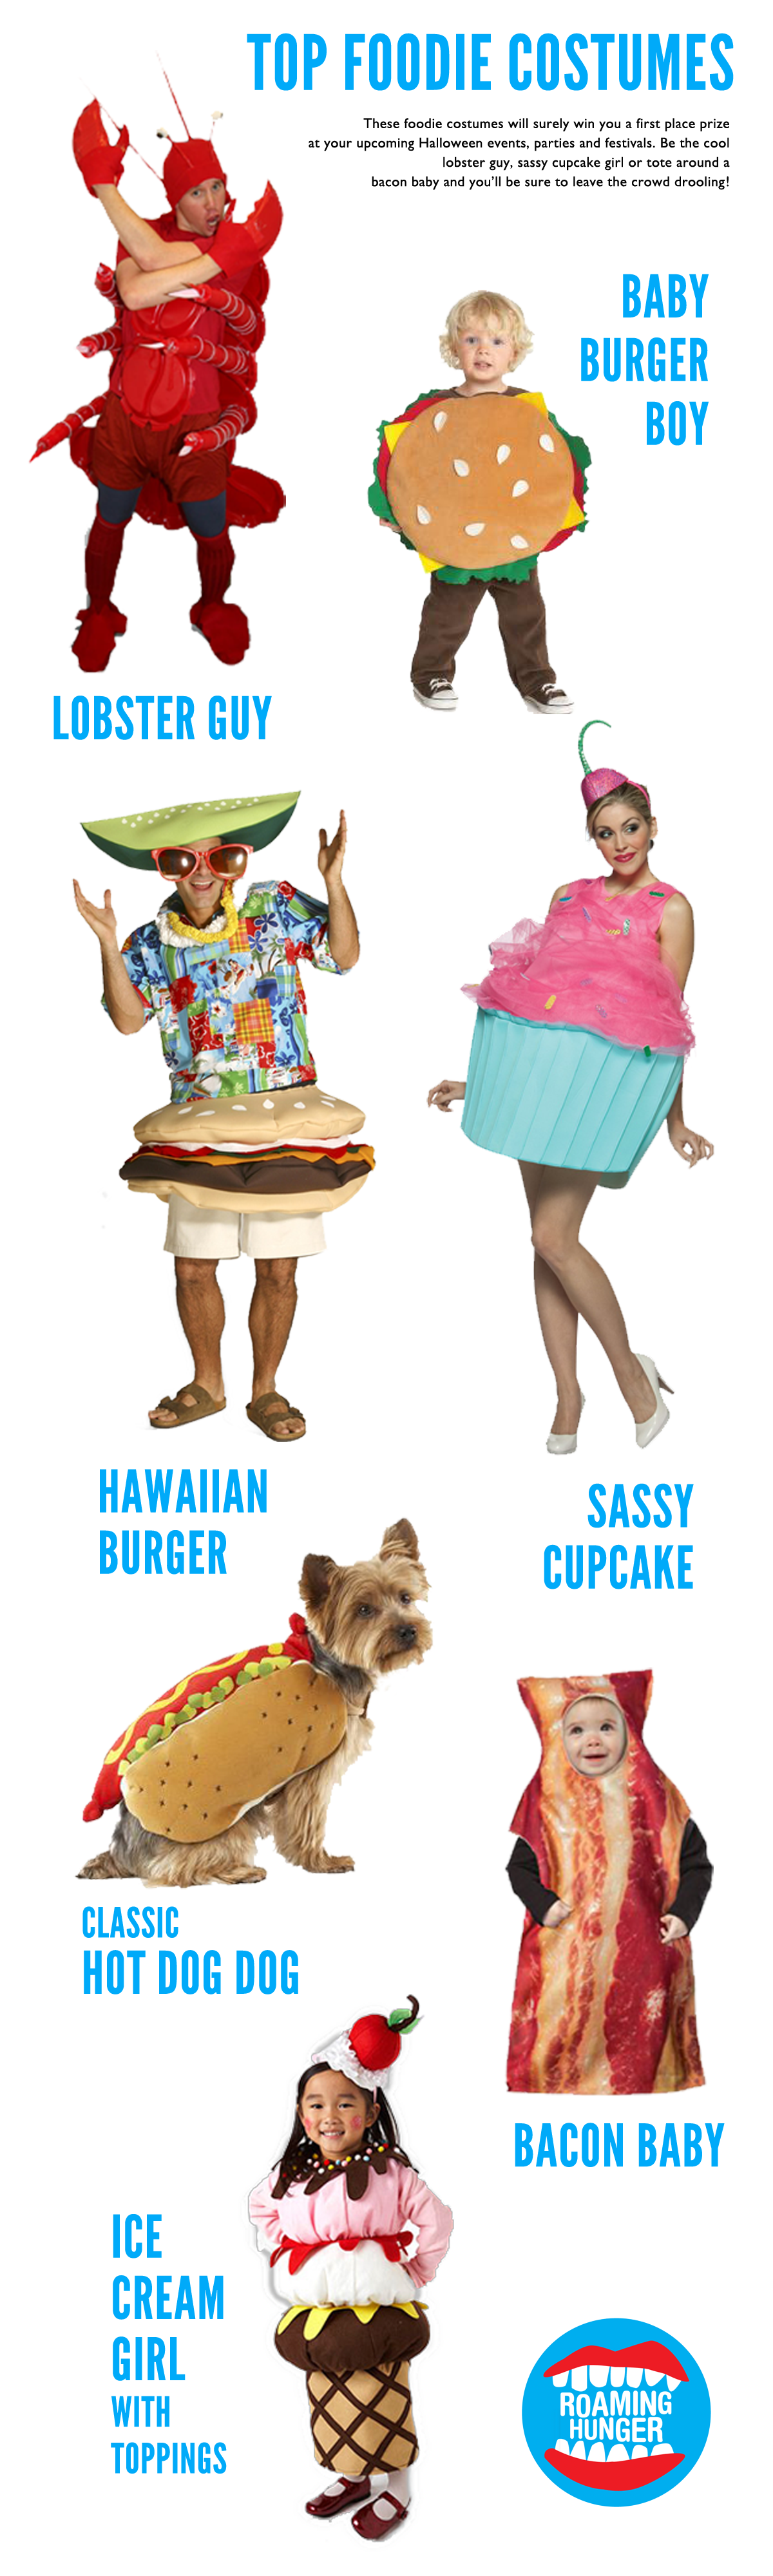 Top Foodie Costumes